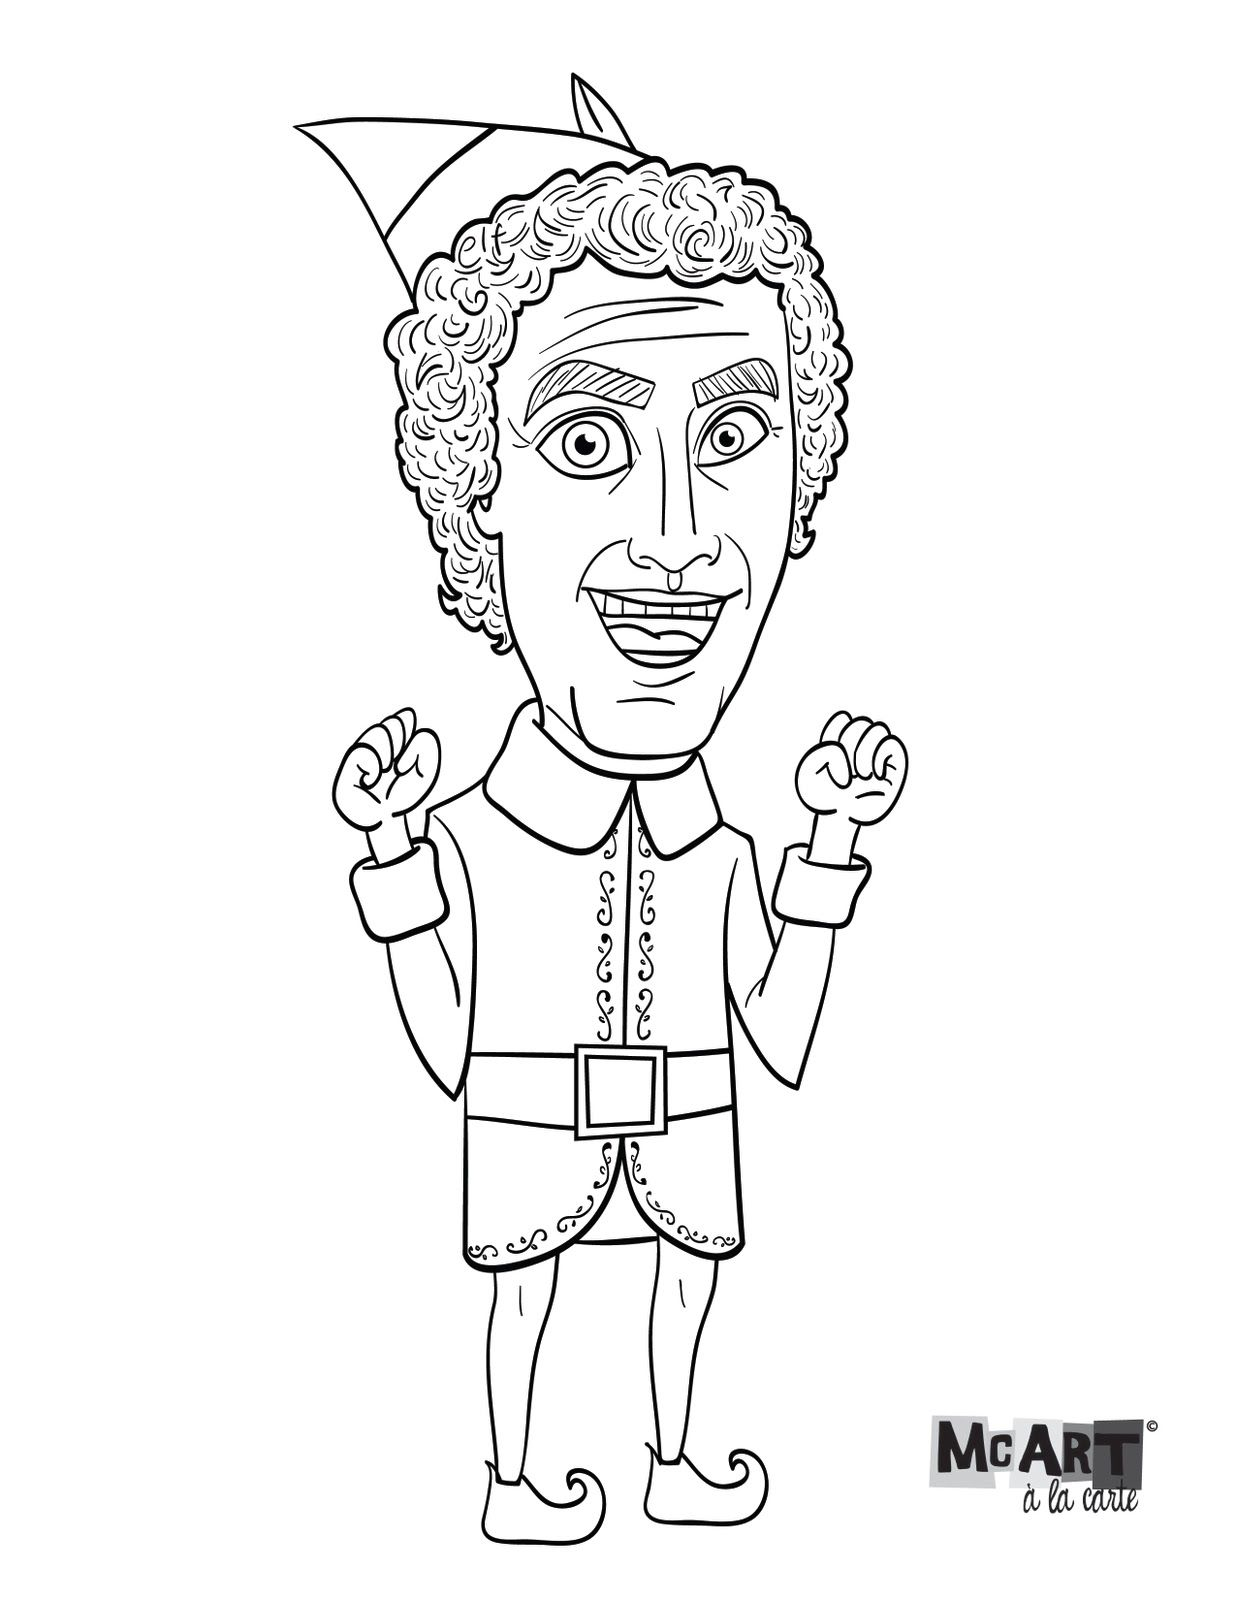 Printable coloring pages elf on the shelf - Mcart La Carte Buddy The Elf Coloring Page